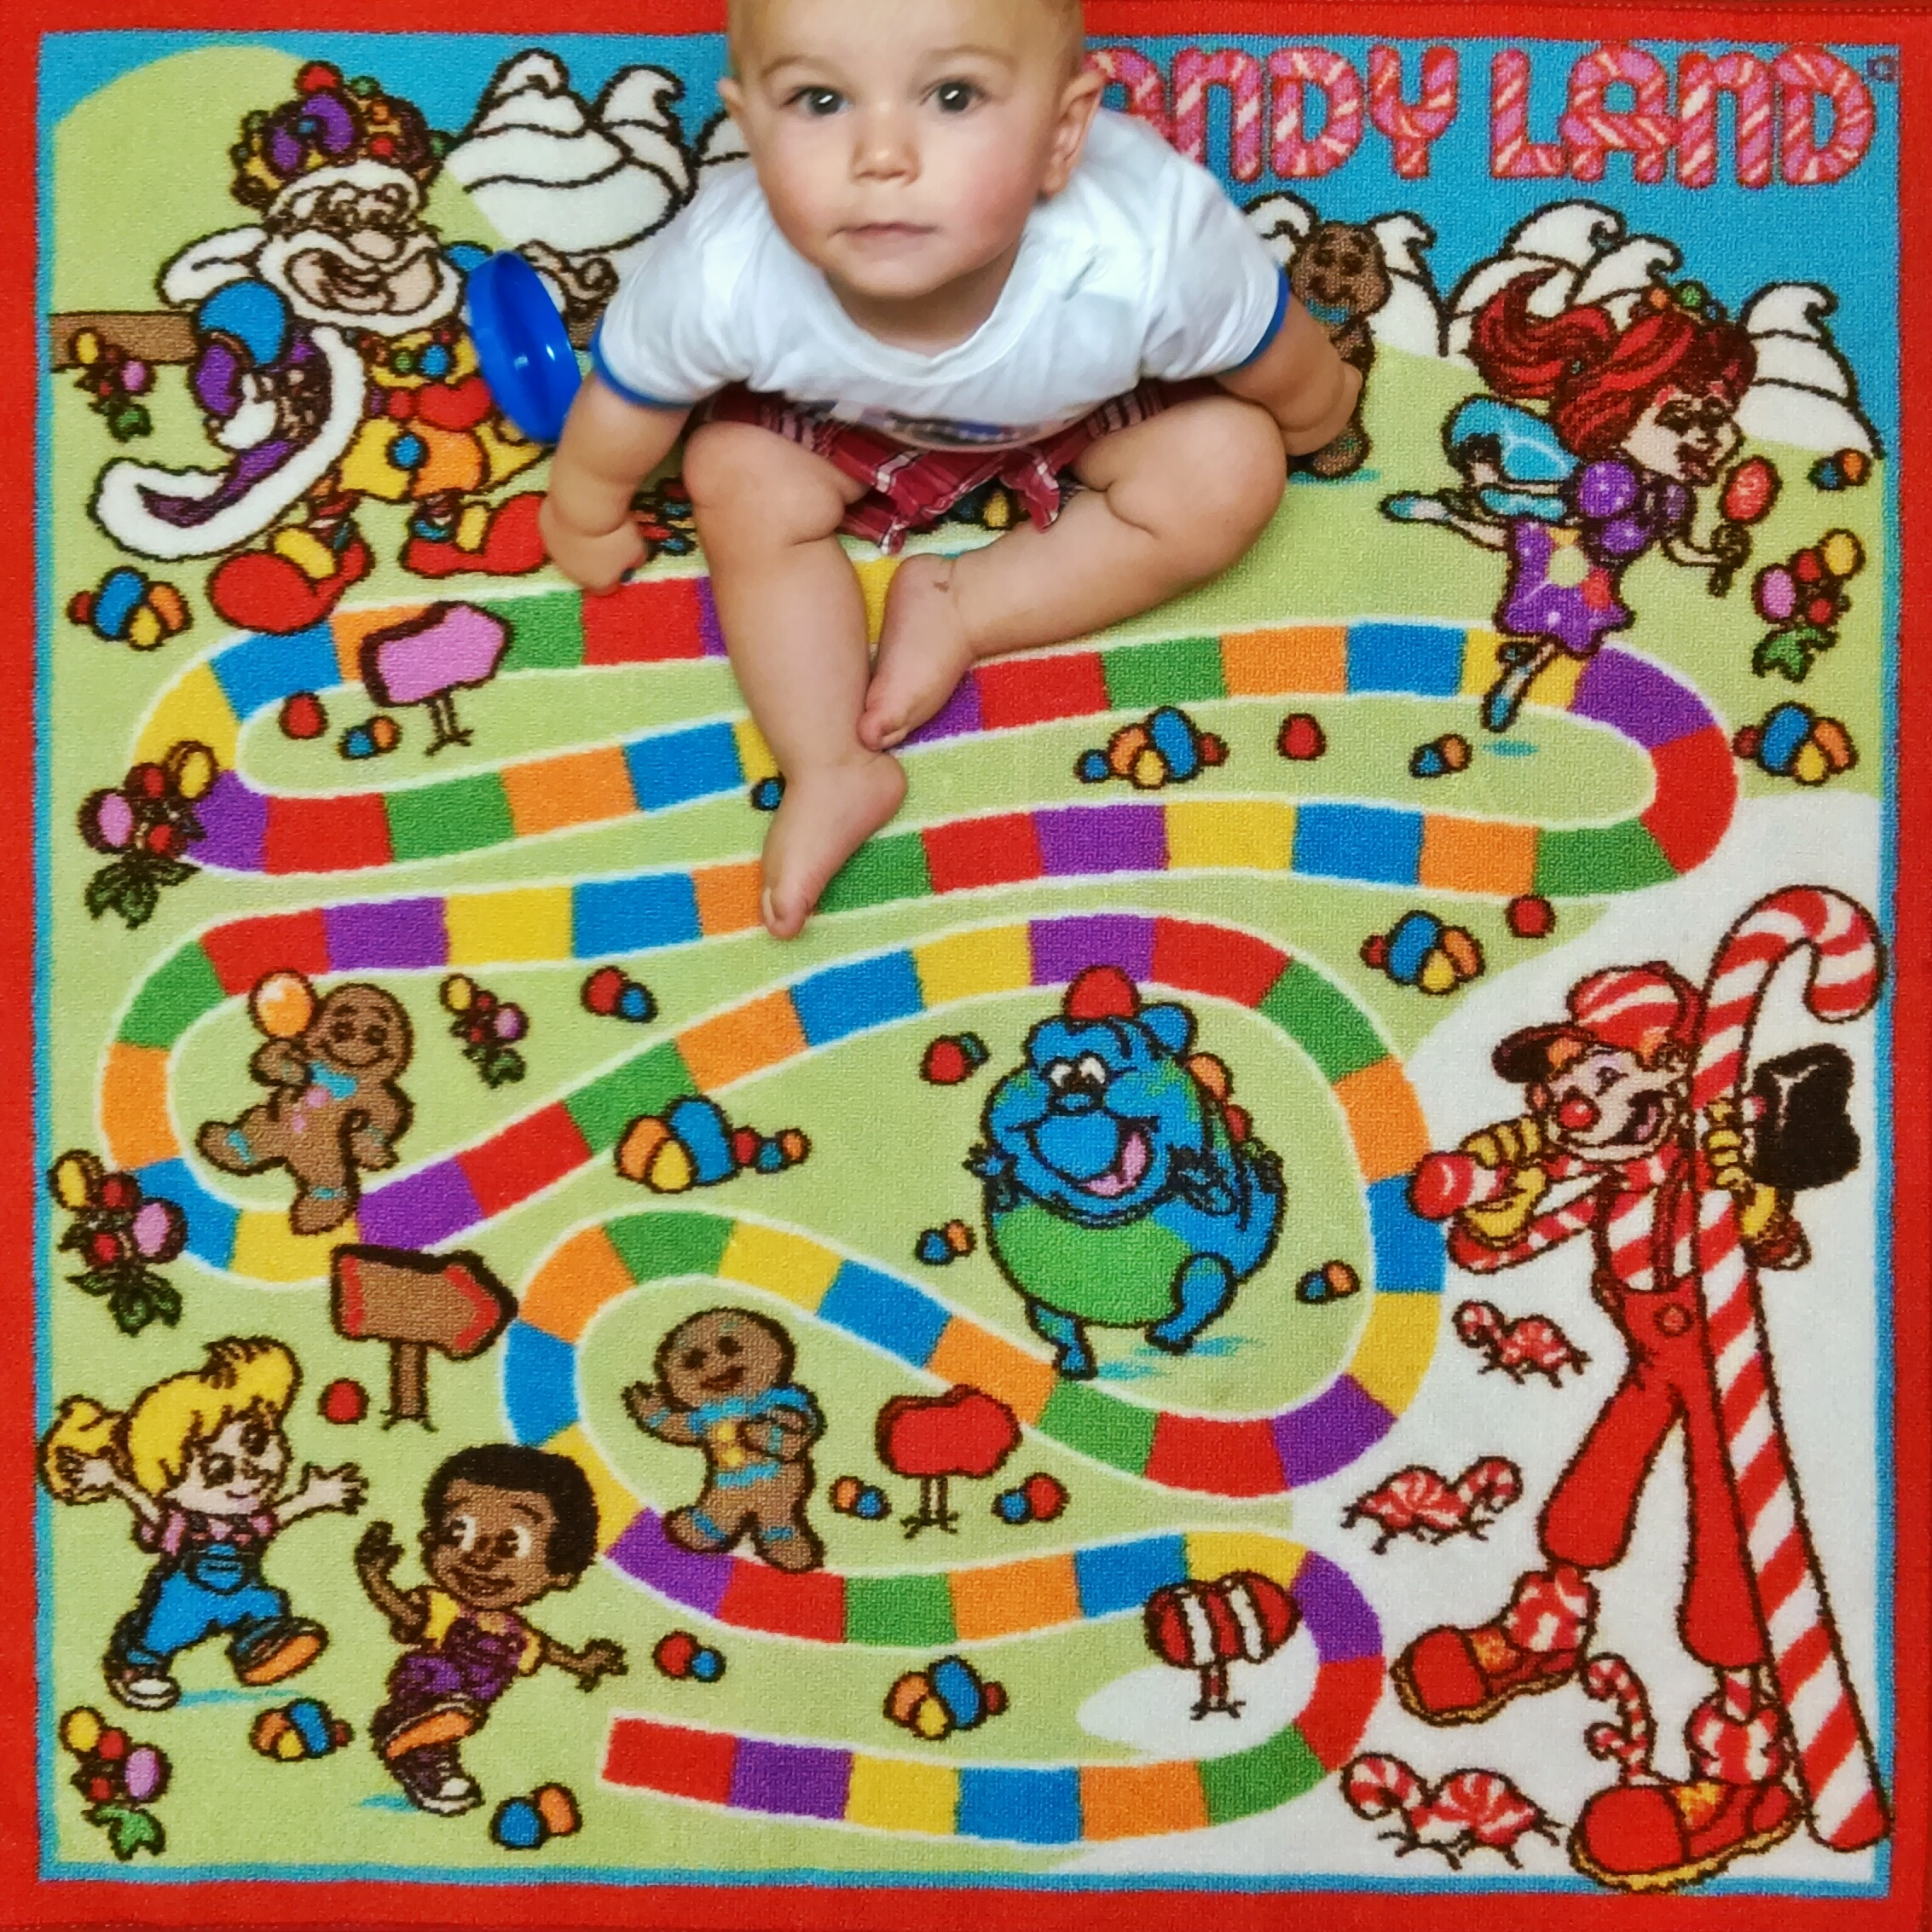 My wife got this Candy Land rug for a quarter at a garage sale!